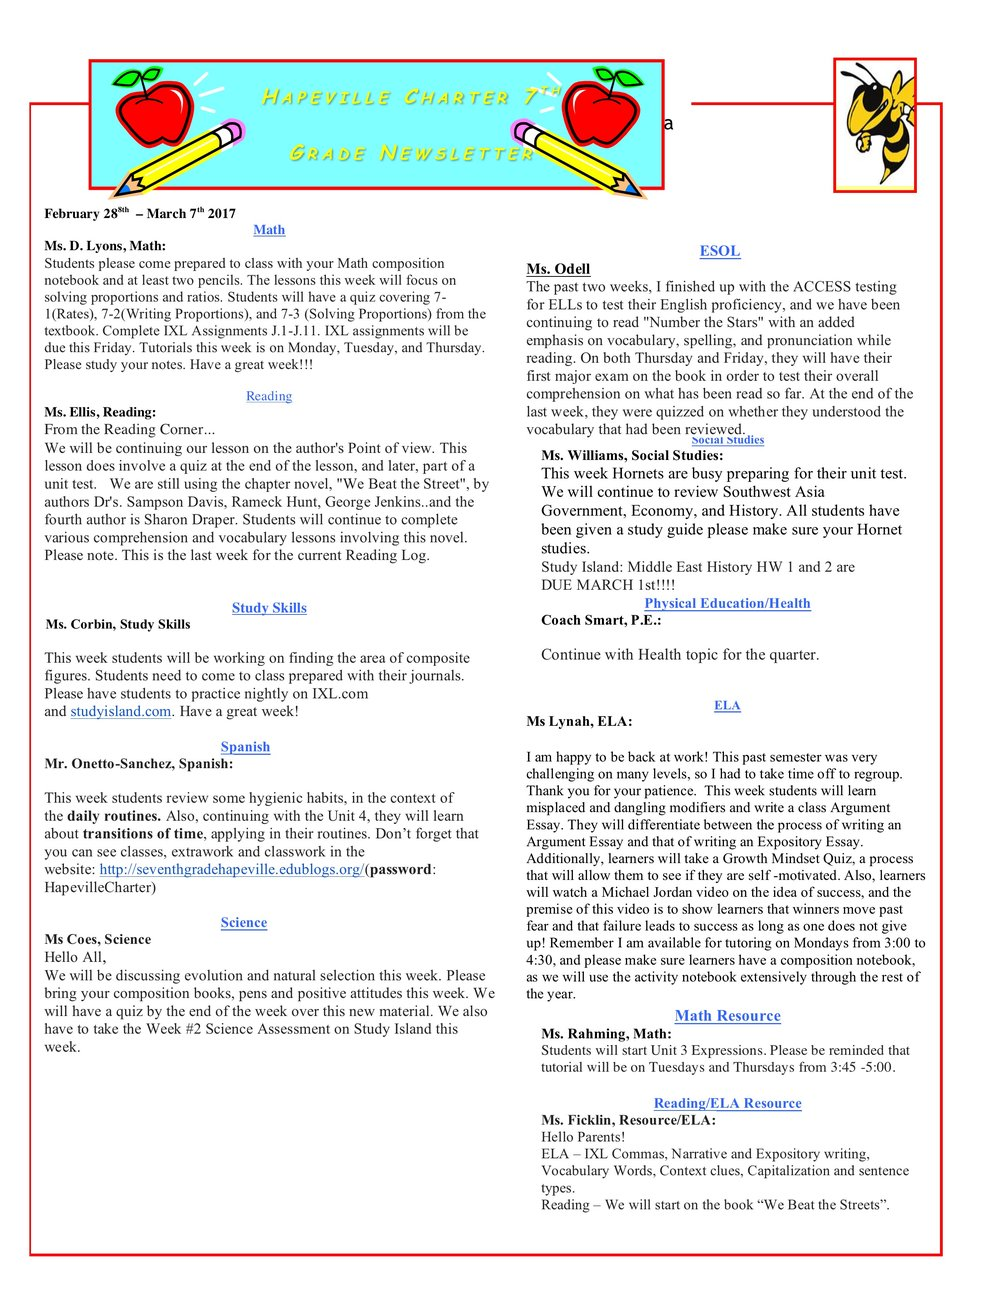 Newsletter Image7th Grade Newsletter 2-28-2017 revised .jpeg